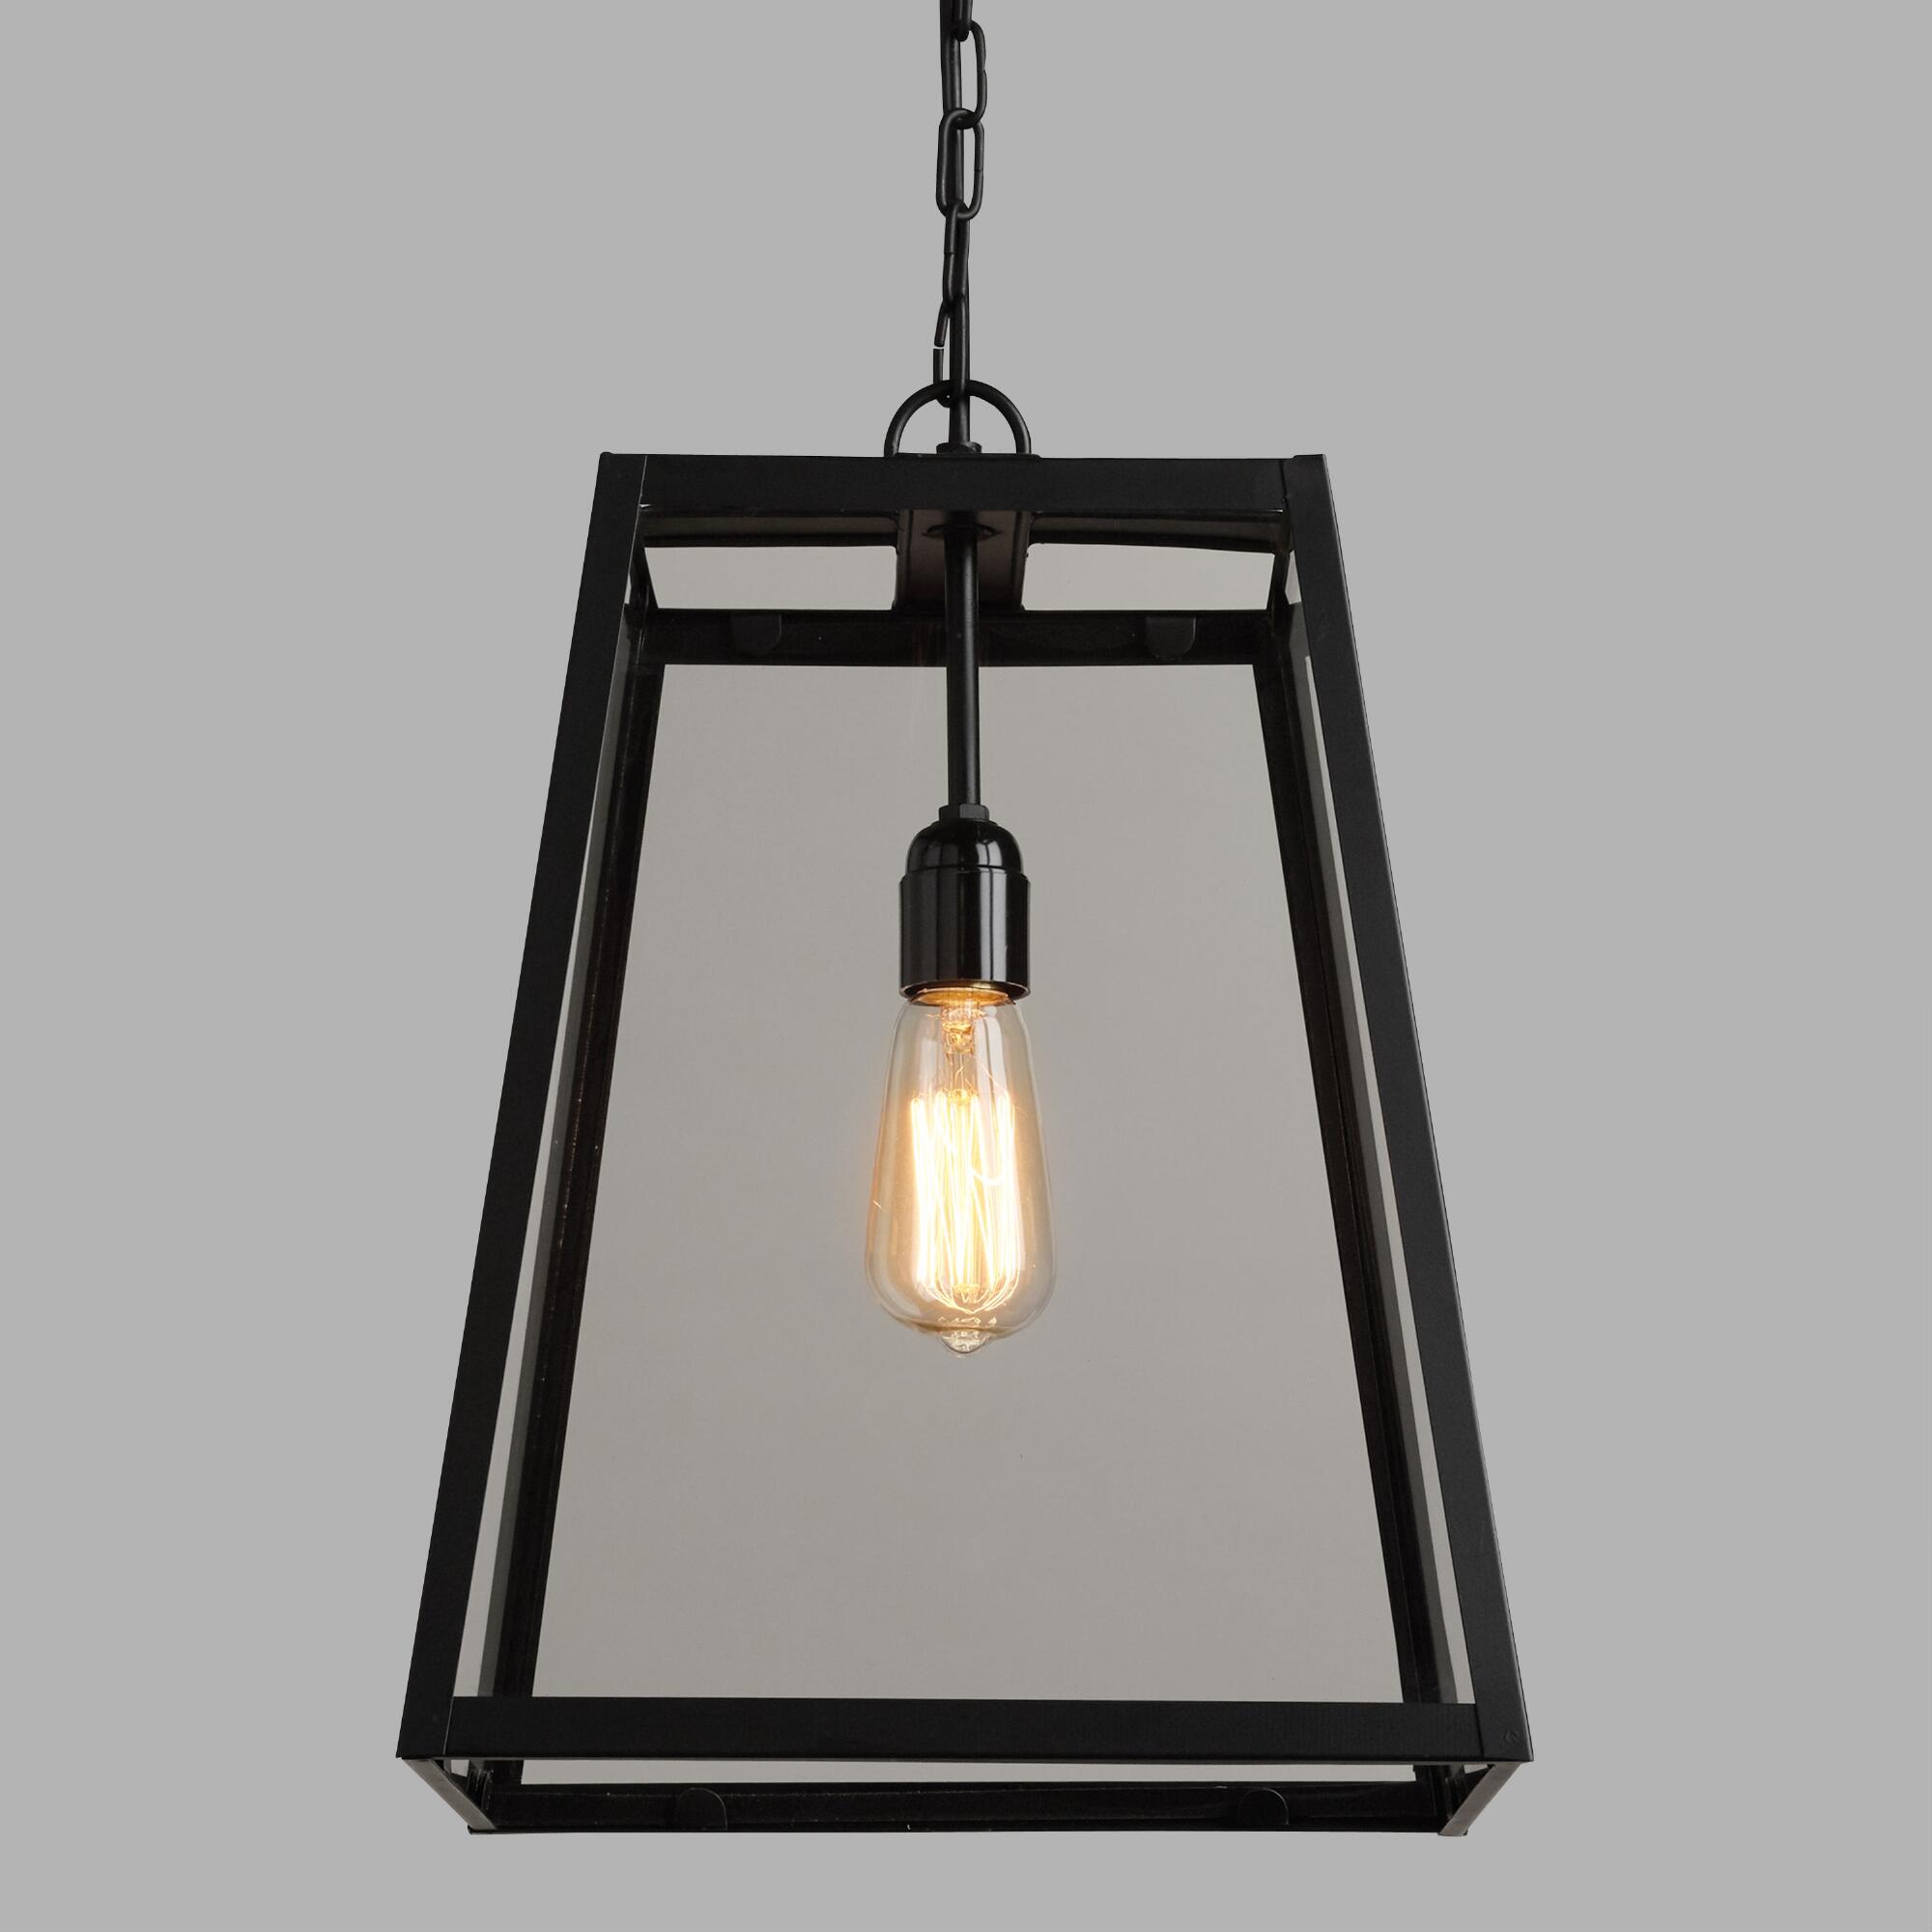 Four Sided Glass Hanging Pendant Lamp Lantern Pendant Lighting